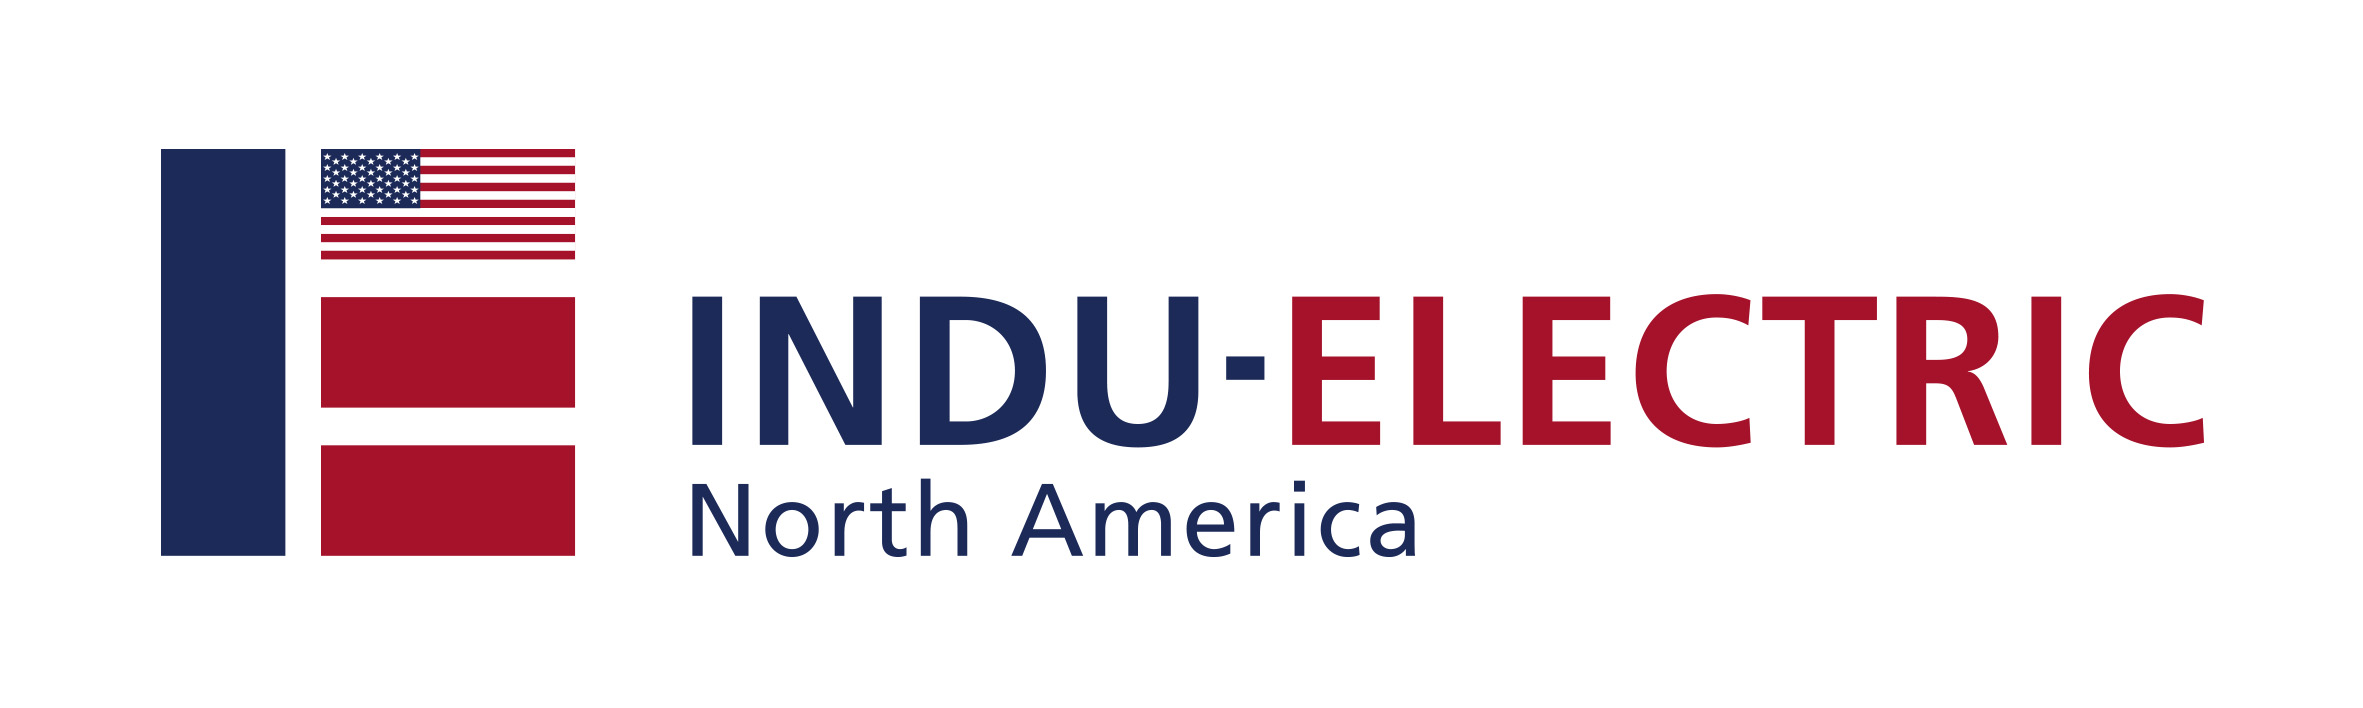 You can see the logo of INDU-ELECTRIC Noth America.